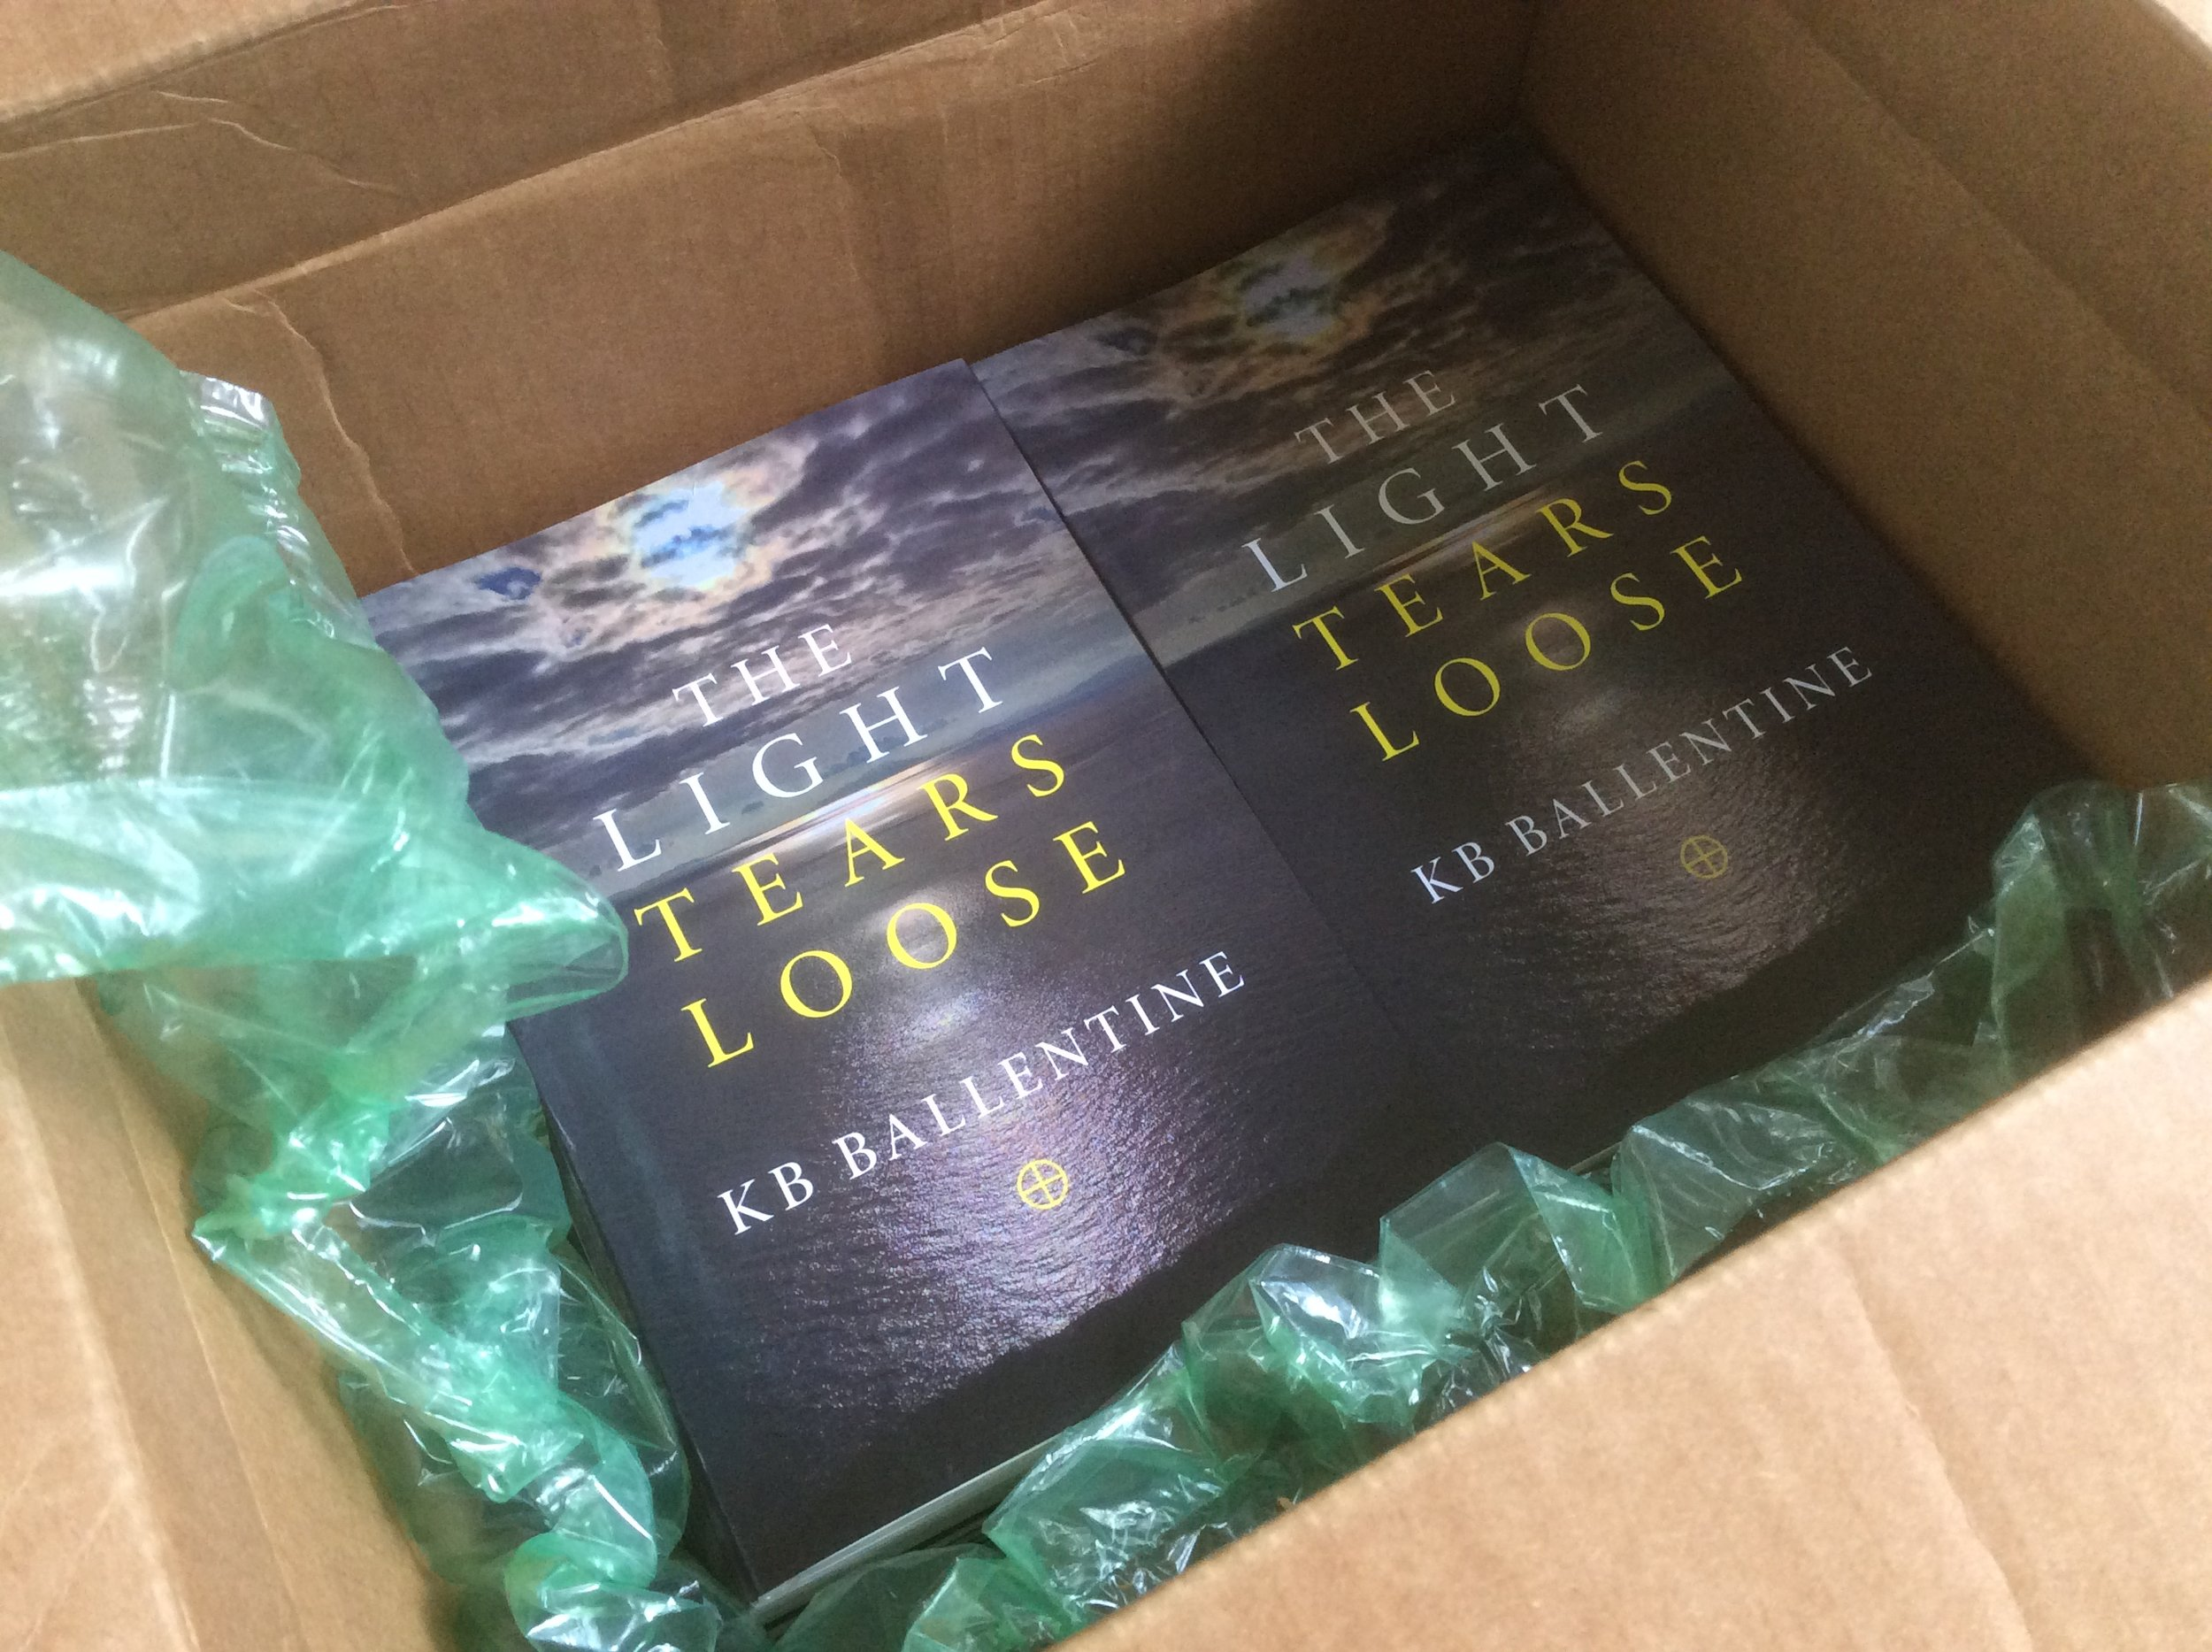 Received copies of my sixth book!